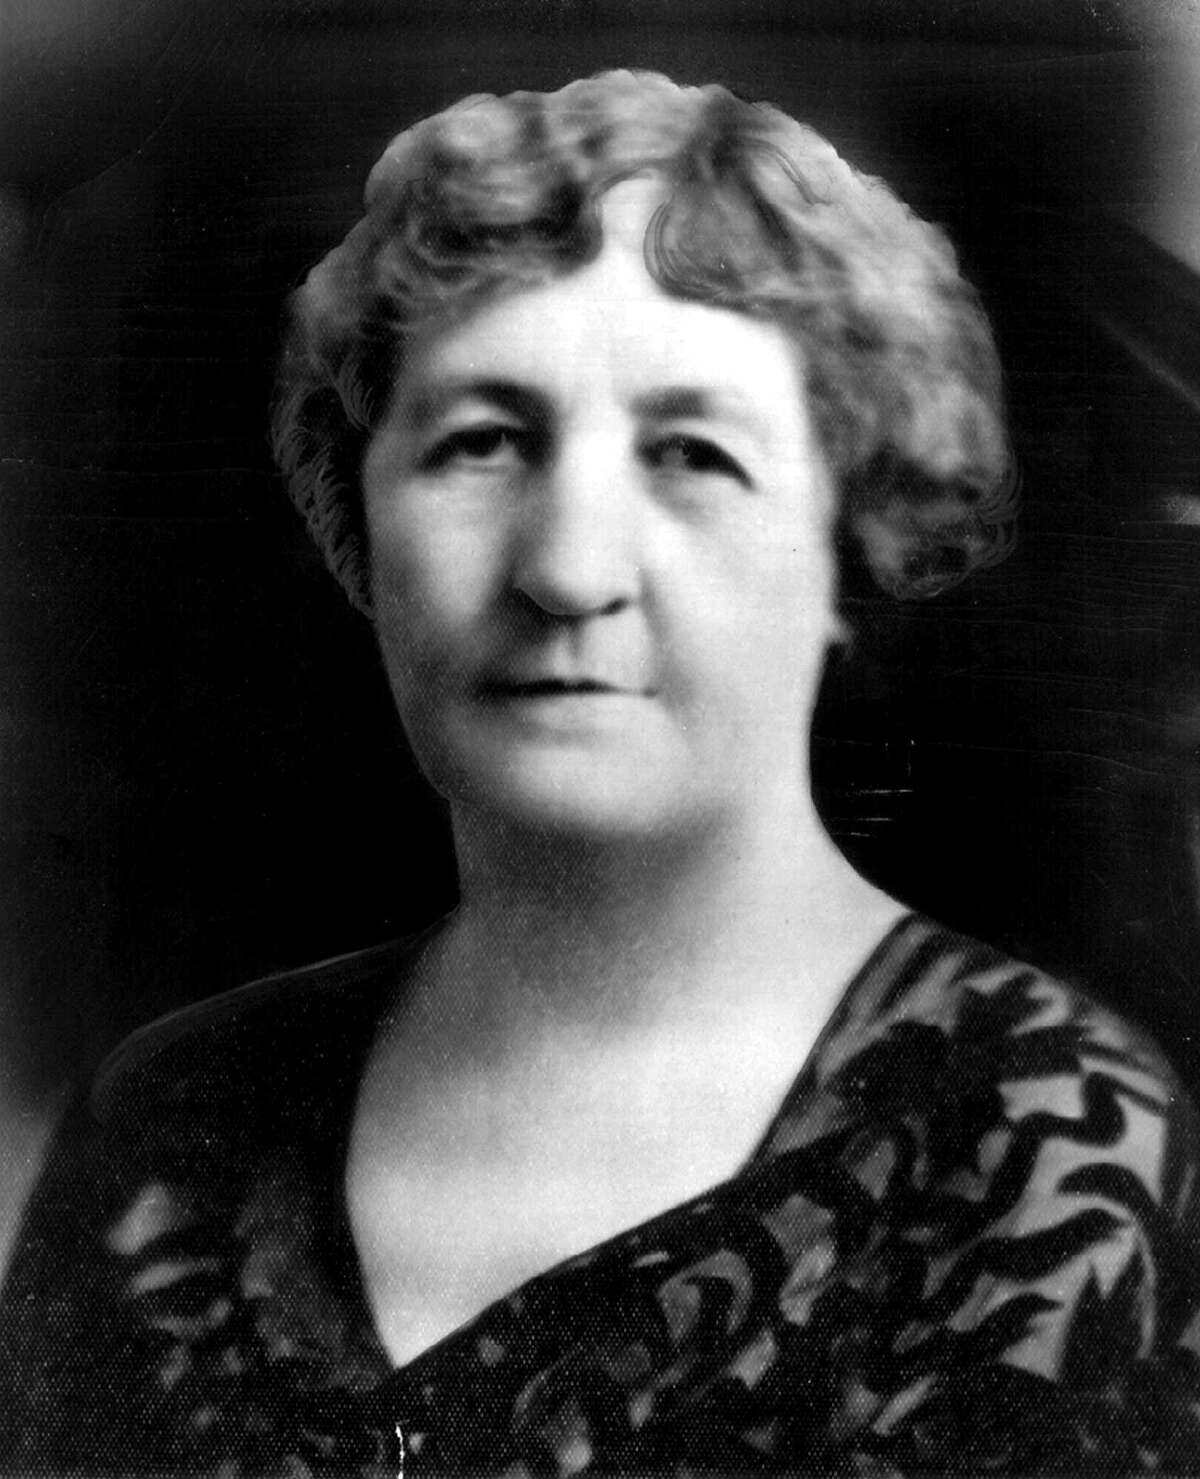 FILE--Former Texas Gov. Miriam 'Ma' Ferguson, who served two two-year terms, from 1925-27 and from 1933-35, is shown in this undated file photo. The Texas governor's limited power in granting reprieves and pardons for condemned inmates is rooted in a 1920s scandal associated with Ferguson, the state's first woman governor. Ferguson's first term was notable for the unusually high number of pardons she granted, averaging 100 per month, more than 2,000 during her two-year term, according to the Texas State Library. (AP Photo, File)